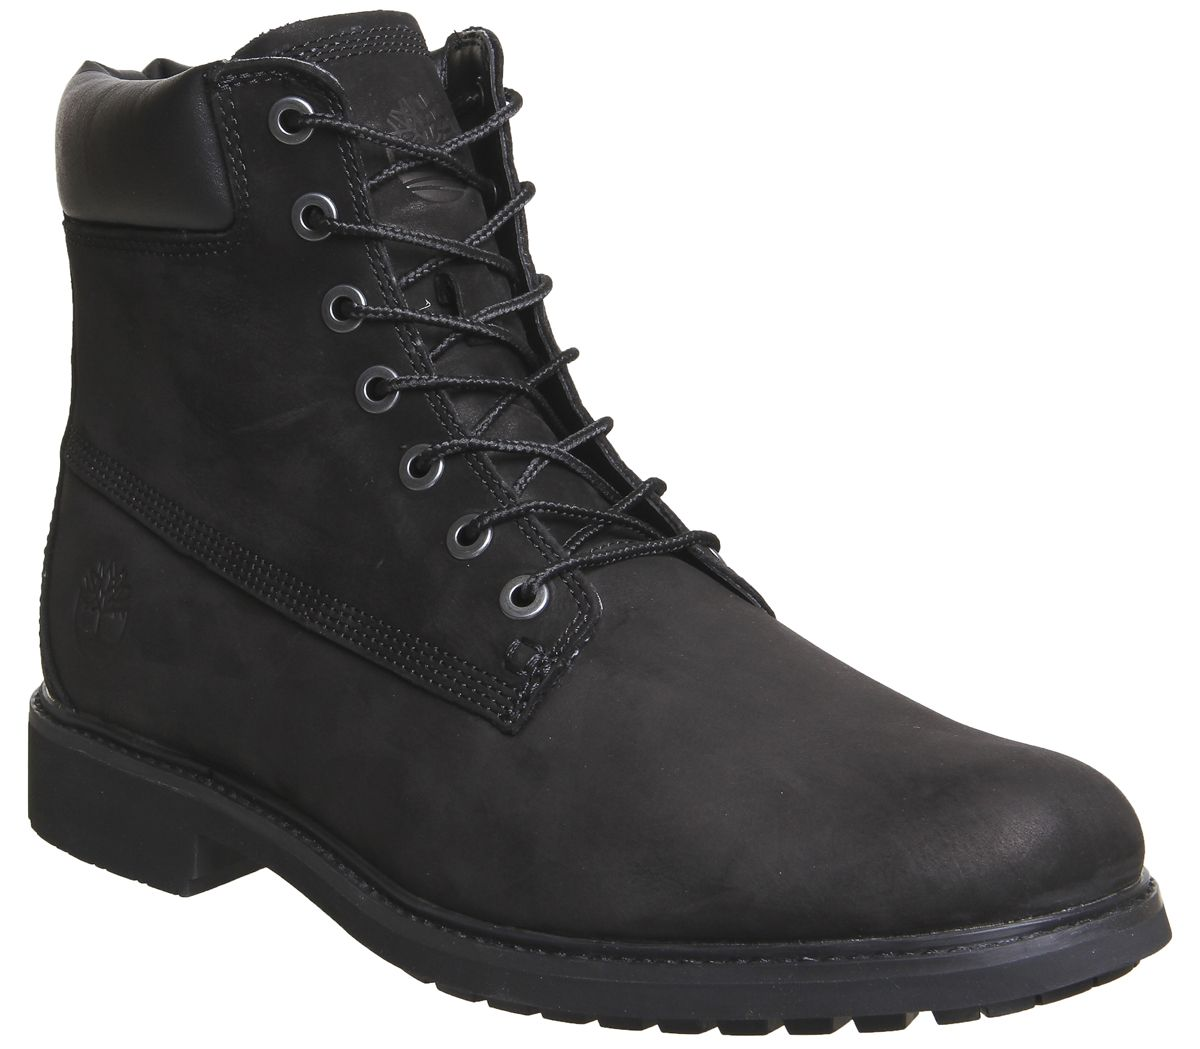 e42d8409c63 Timberland Mens Slim 6 Inch Boots Black Nubuck - Boots